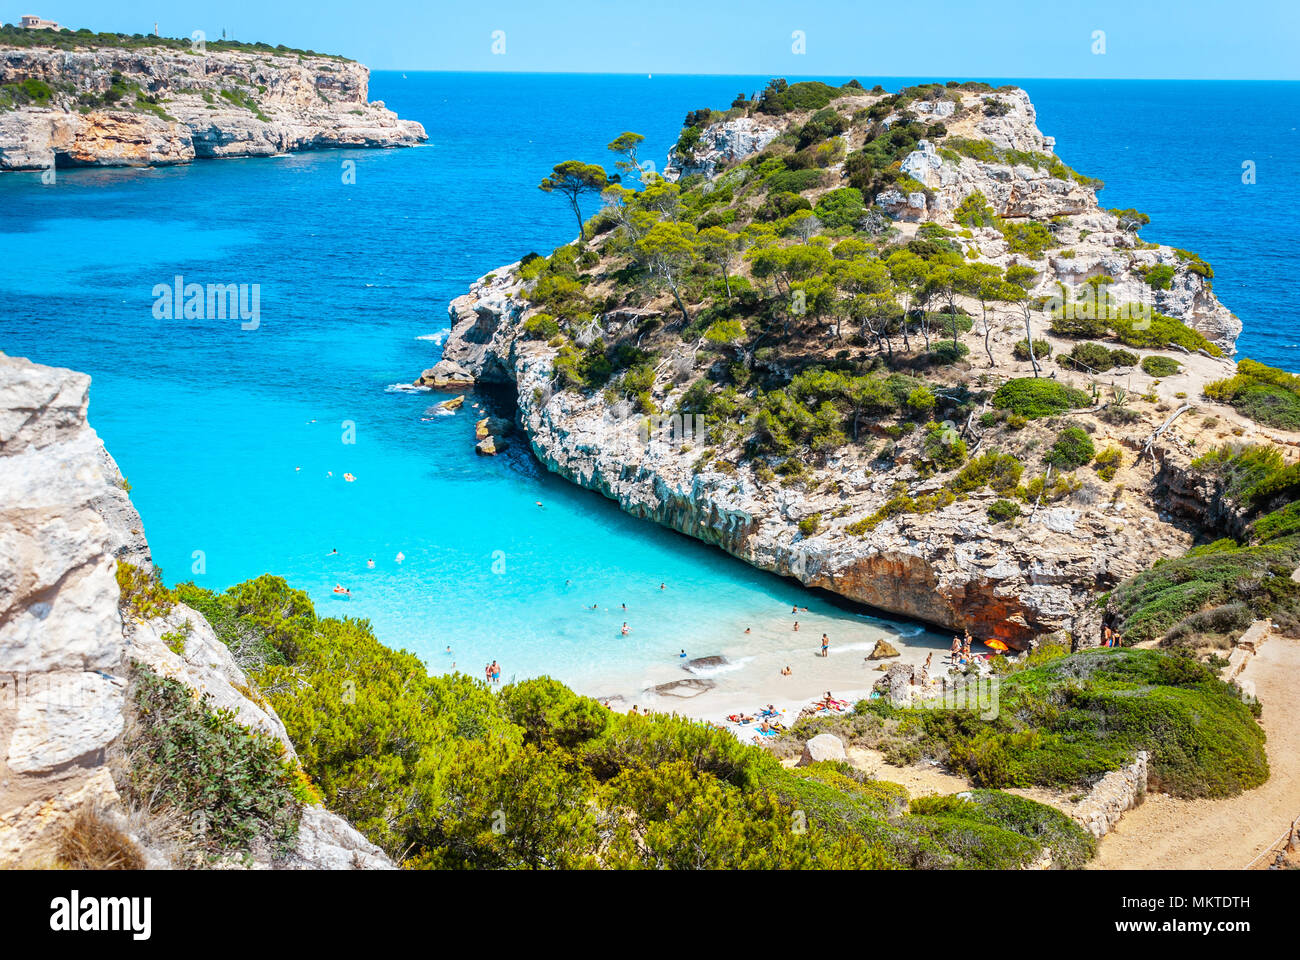 Calo des Moro, Mallorca on a sunny day with people on the beach - Stock Image